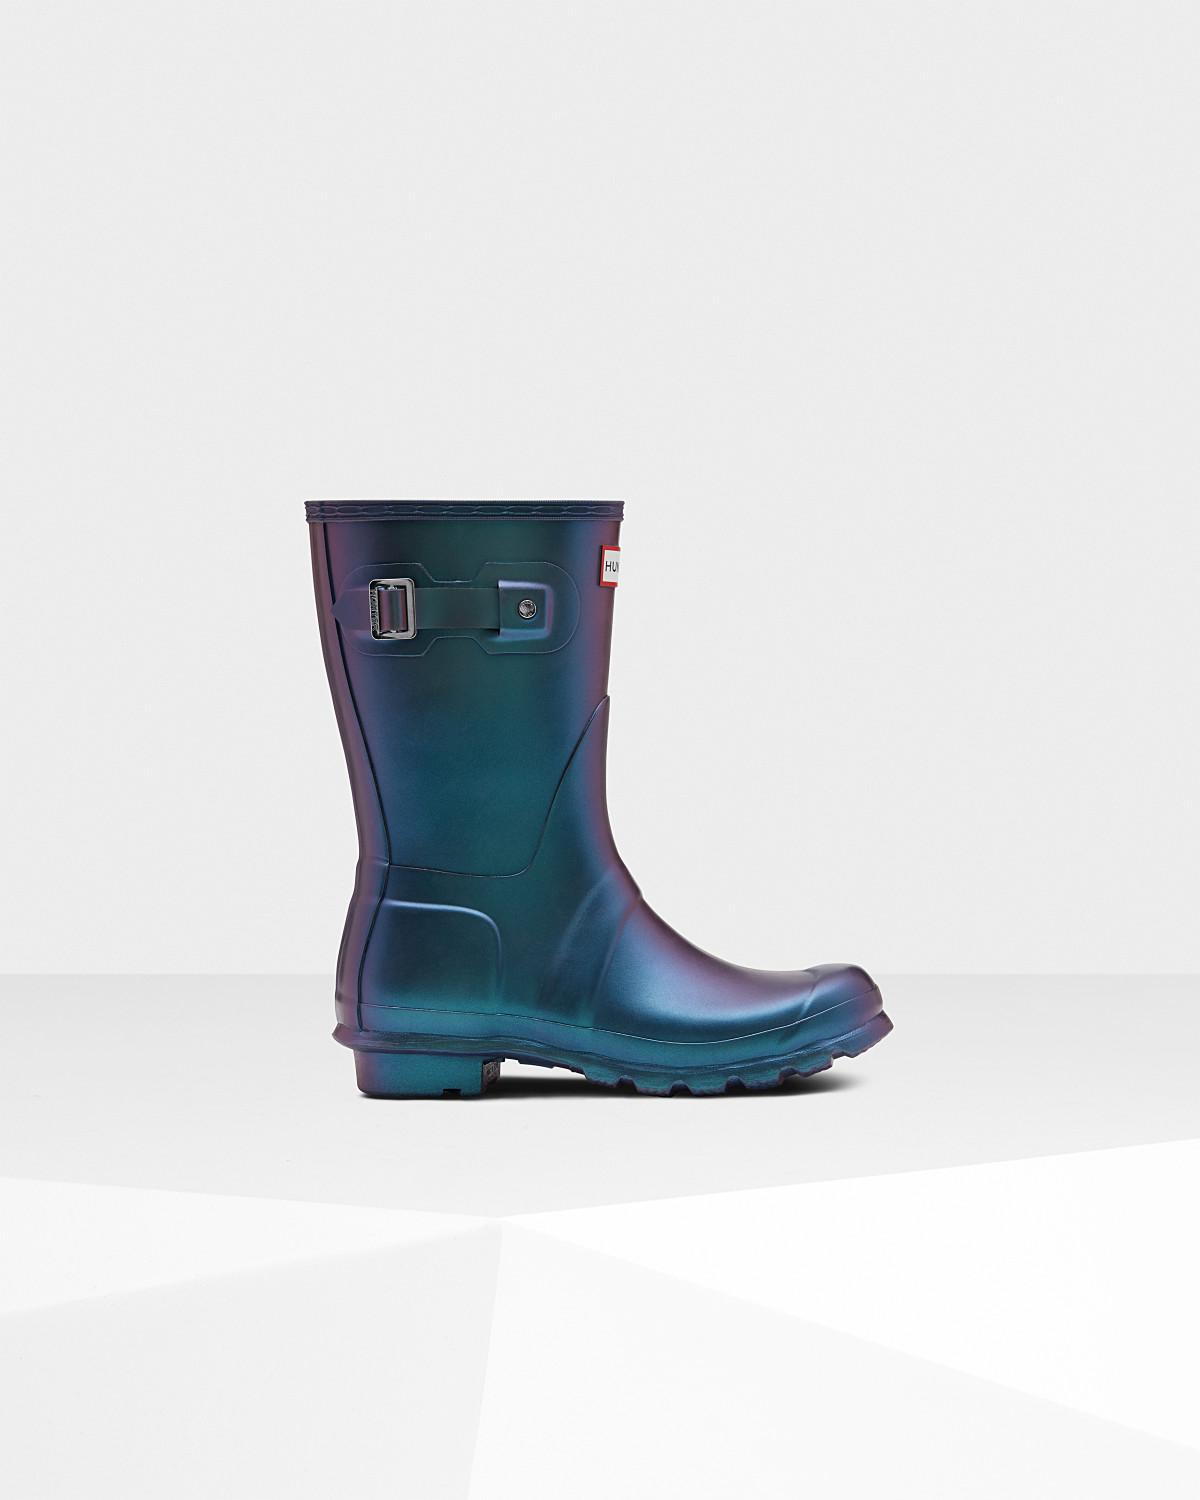 a465e685e00 Lyst - HUNTER Women s Original Nebula Short Rain Boots in Blue